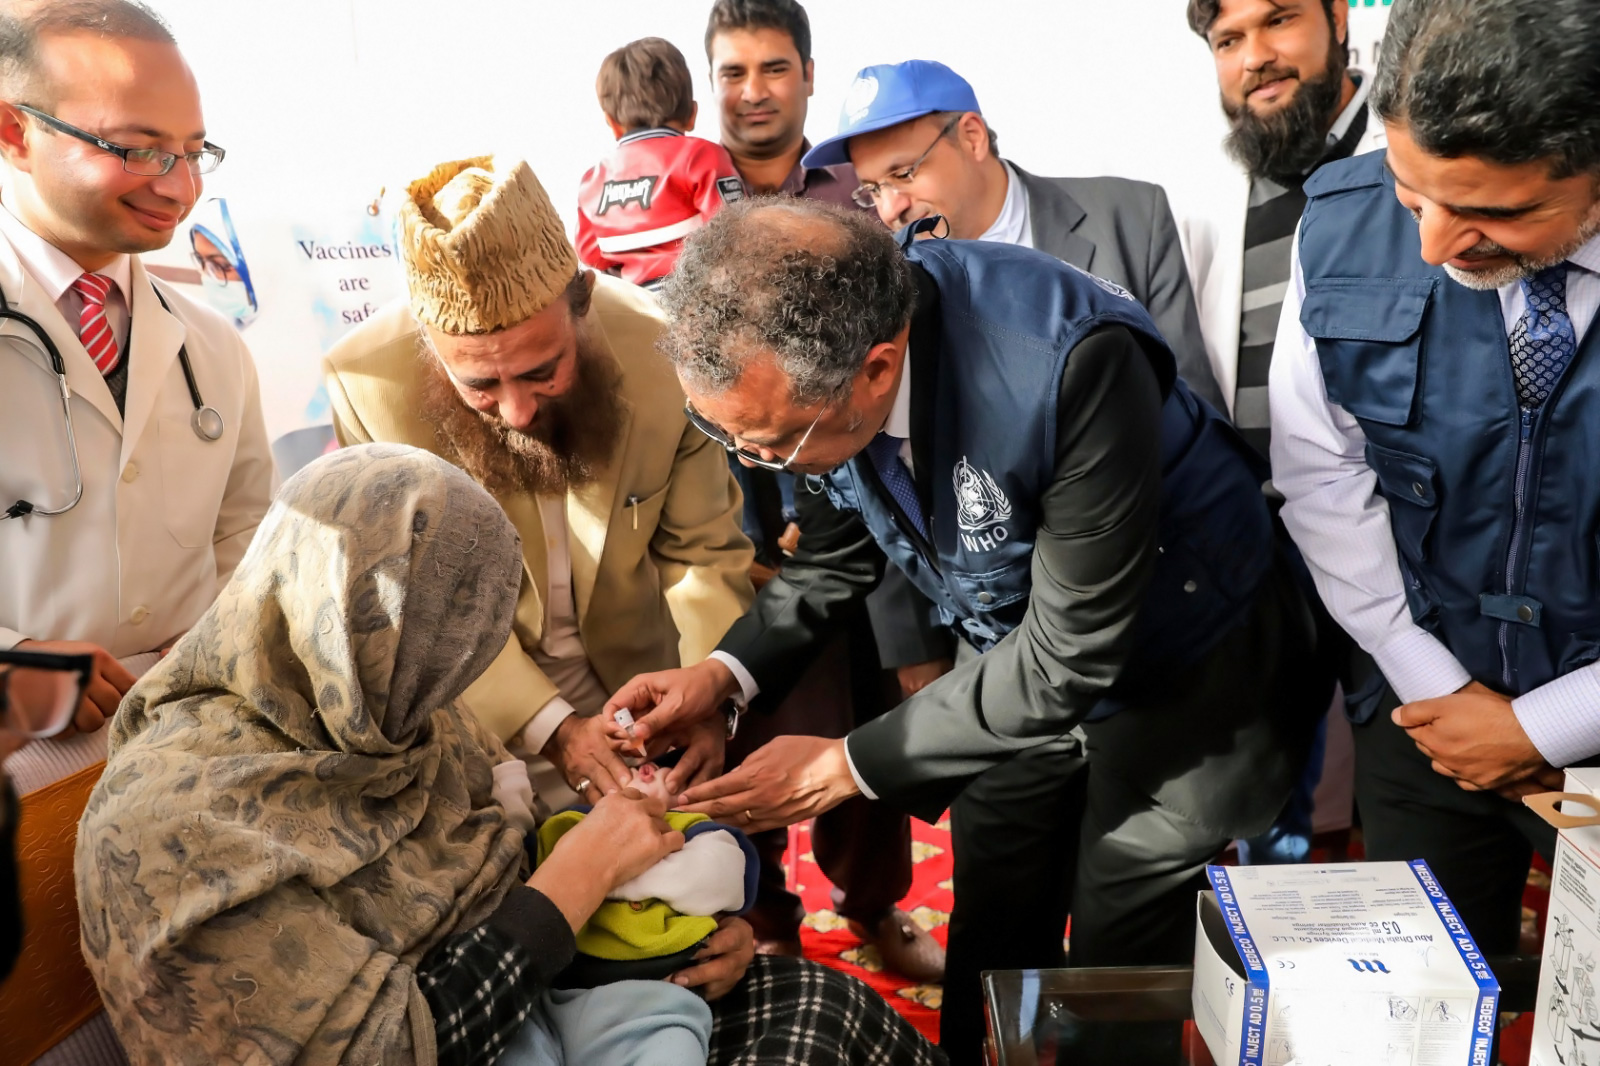 Dr Tedros Adhanom Ghebreysus, WHO Director General and Chair Polio Oversight Board, administering polio drops to a young child in Pakistan. WHO/Jinni